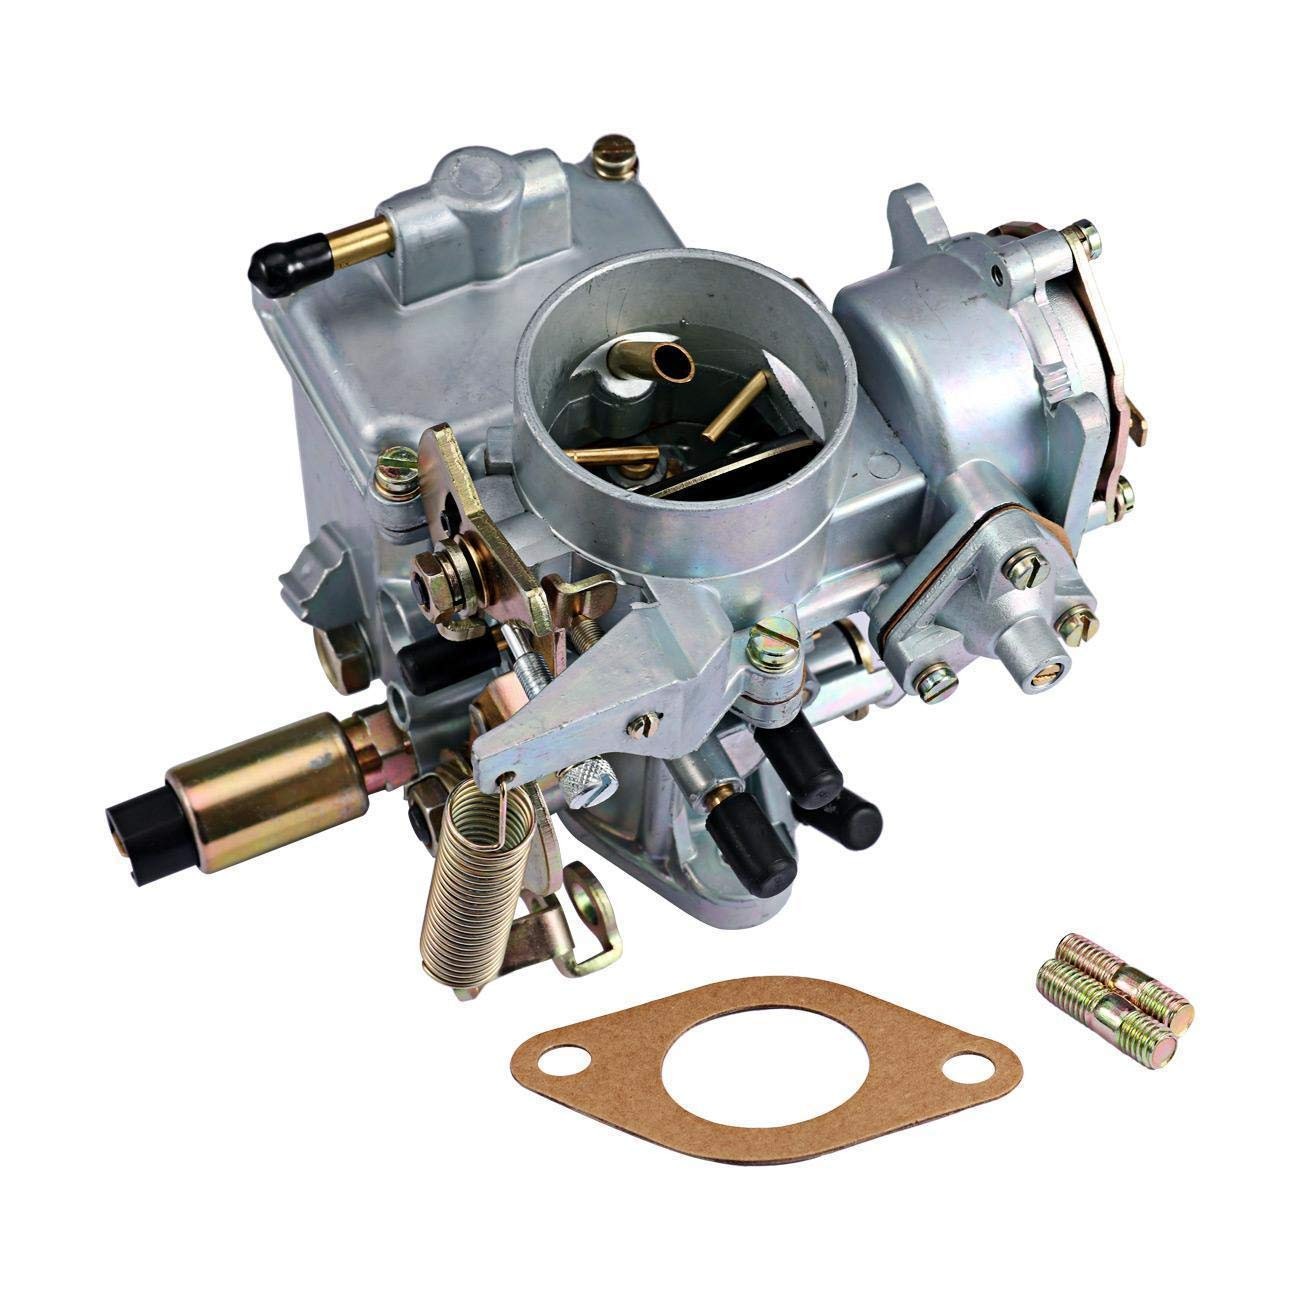 1. ALAVENTE Car Carburetor for 113 129 029A VW beetle 30/31PICT